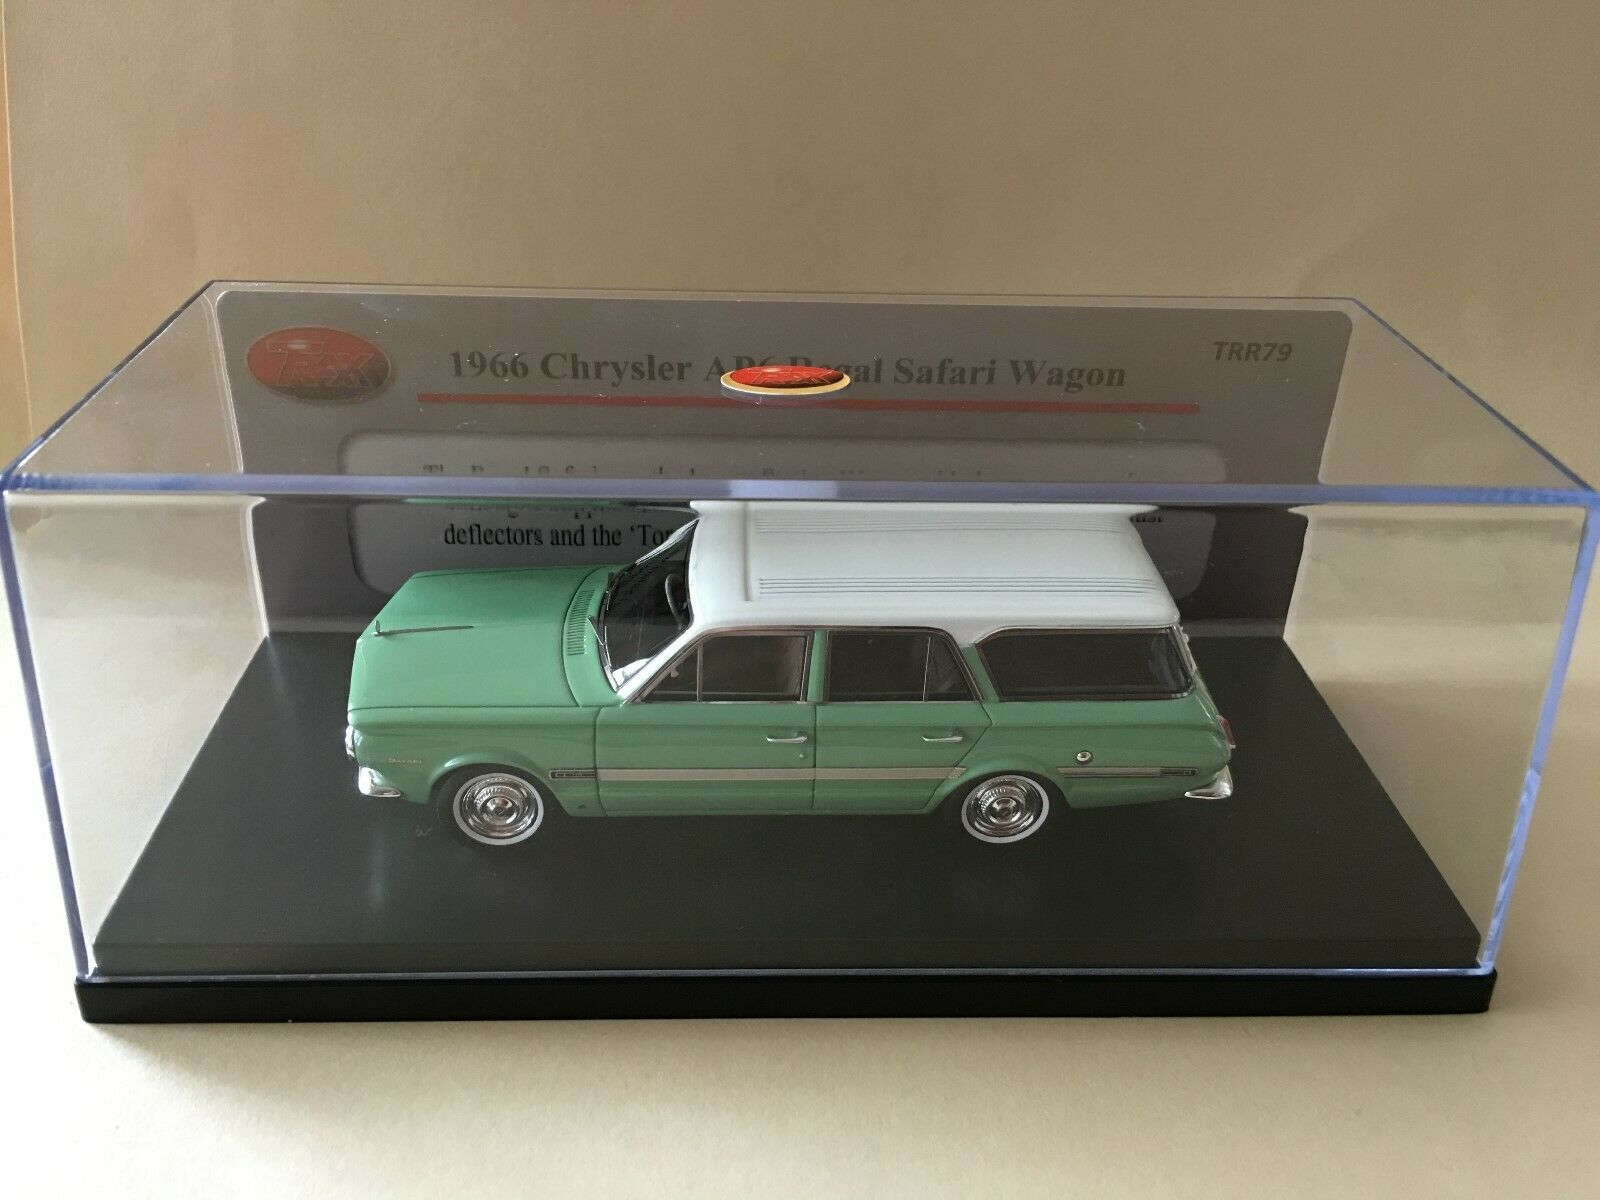 1 43 TRAX TRR79  1966 Chrysler AP6 Regal Safari Wagon - verde bianca roof